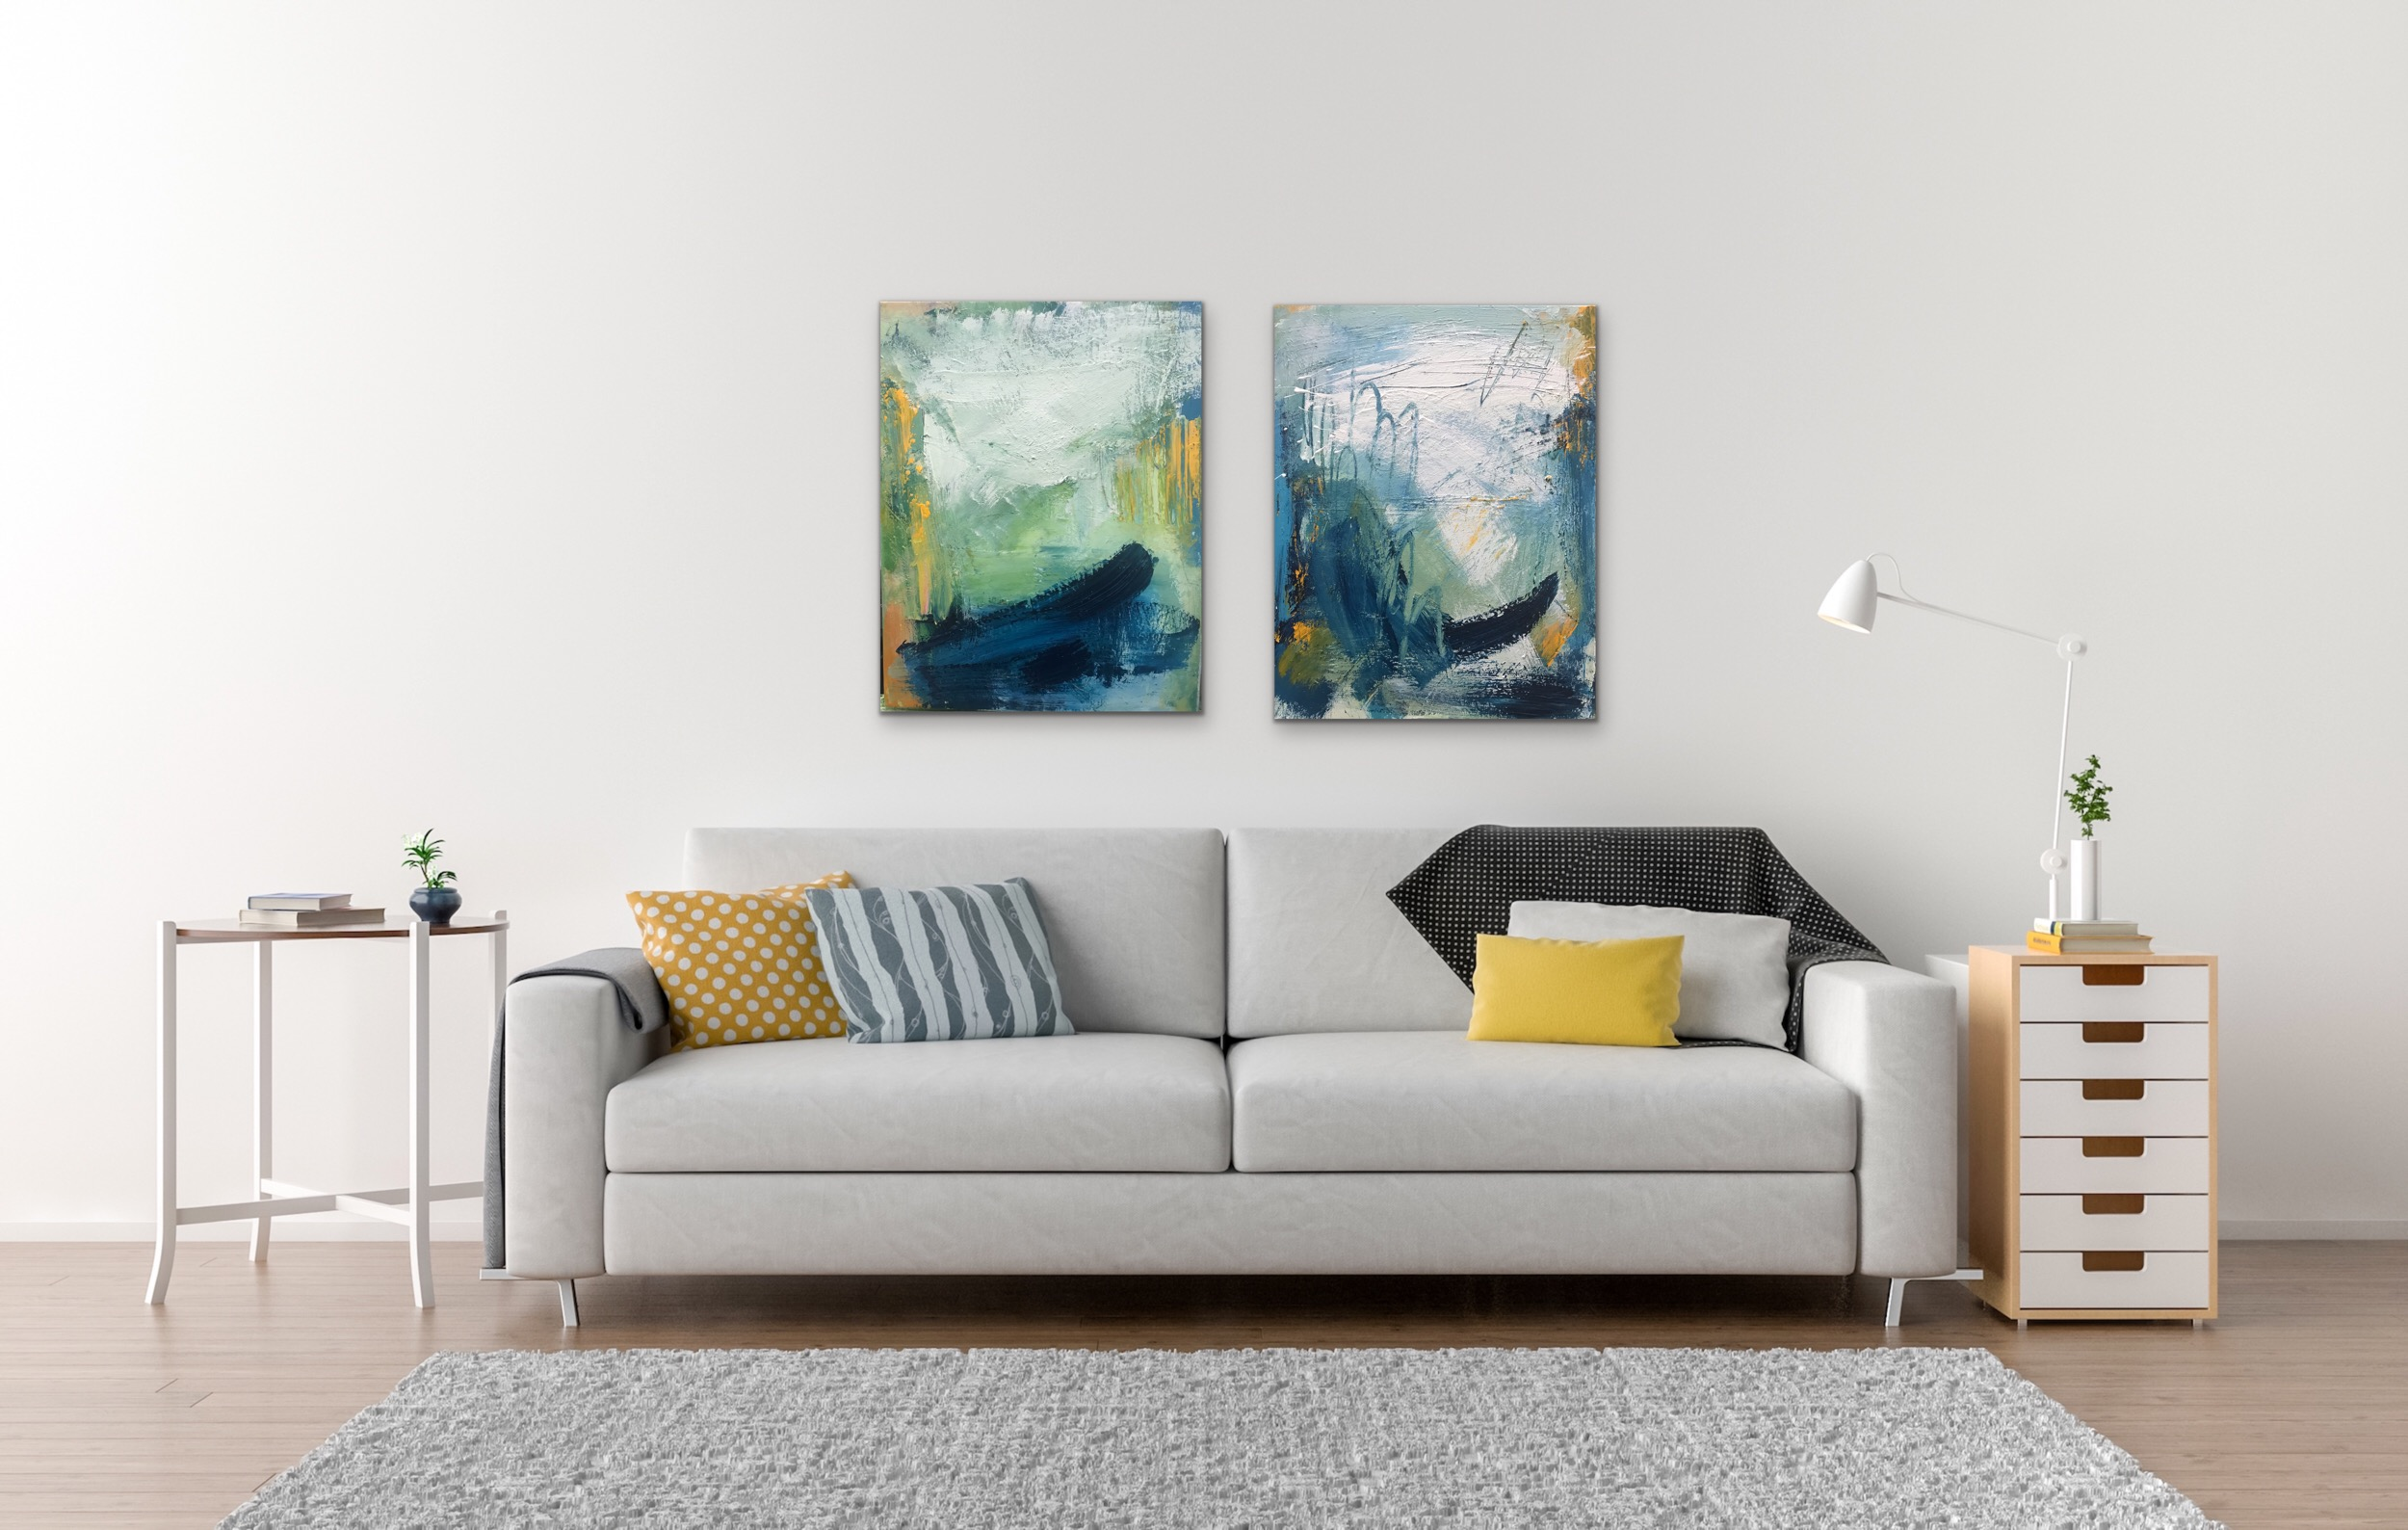 Diptych - Acrylic and mixed media paintings make a great pairing over a sofa or bed. Style your home with abstract art to make a bold statement.